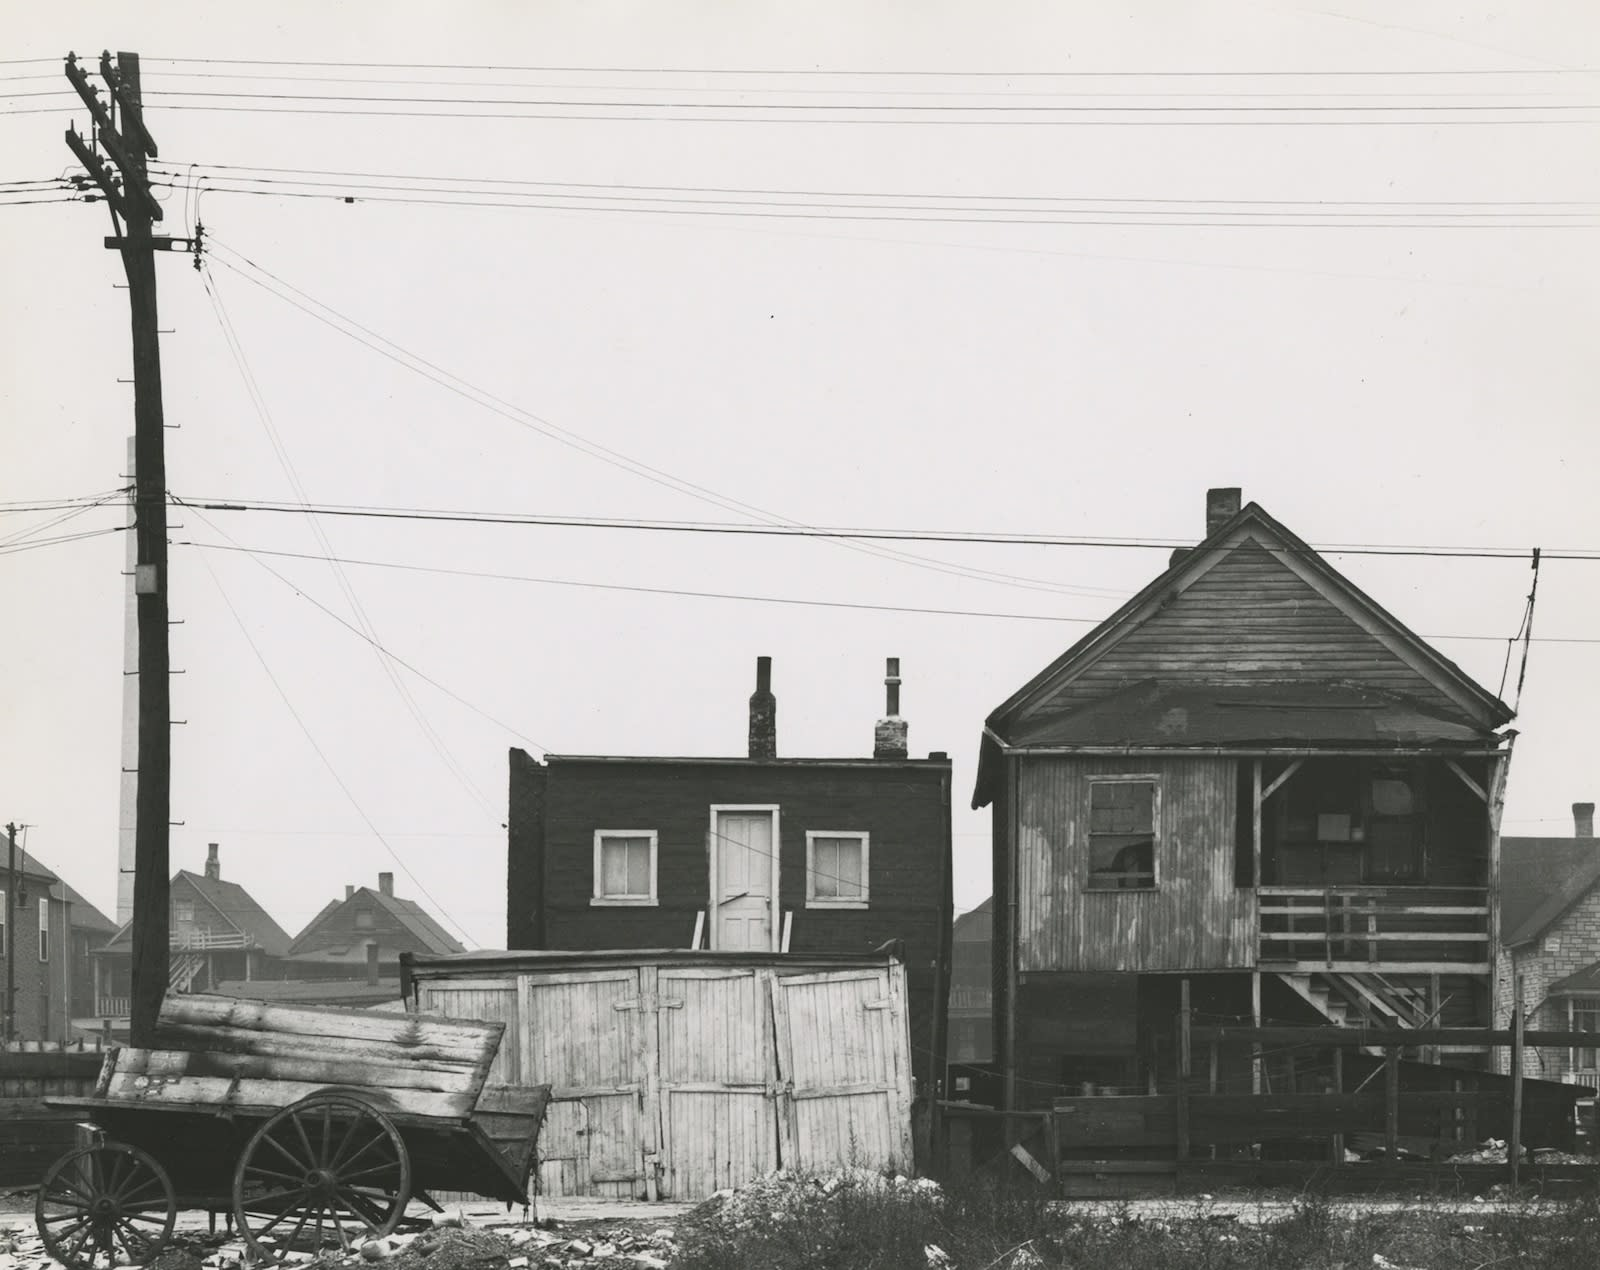 Marvin E. Newman, Wooden Houses, Southside, Chicago, 1950